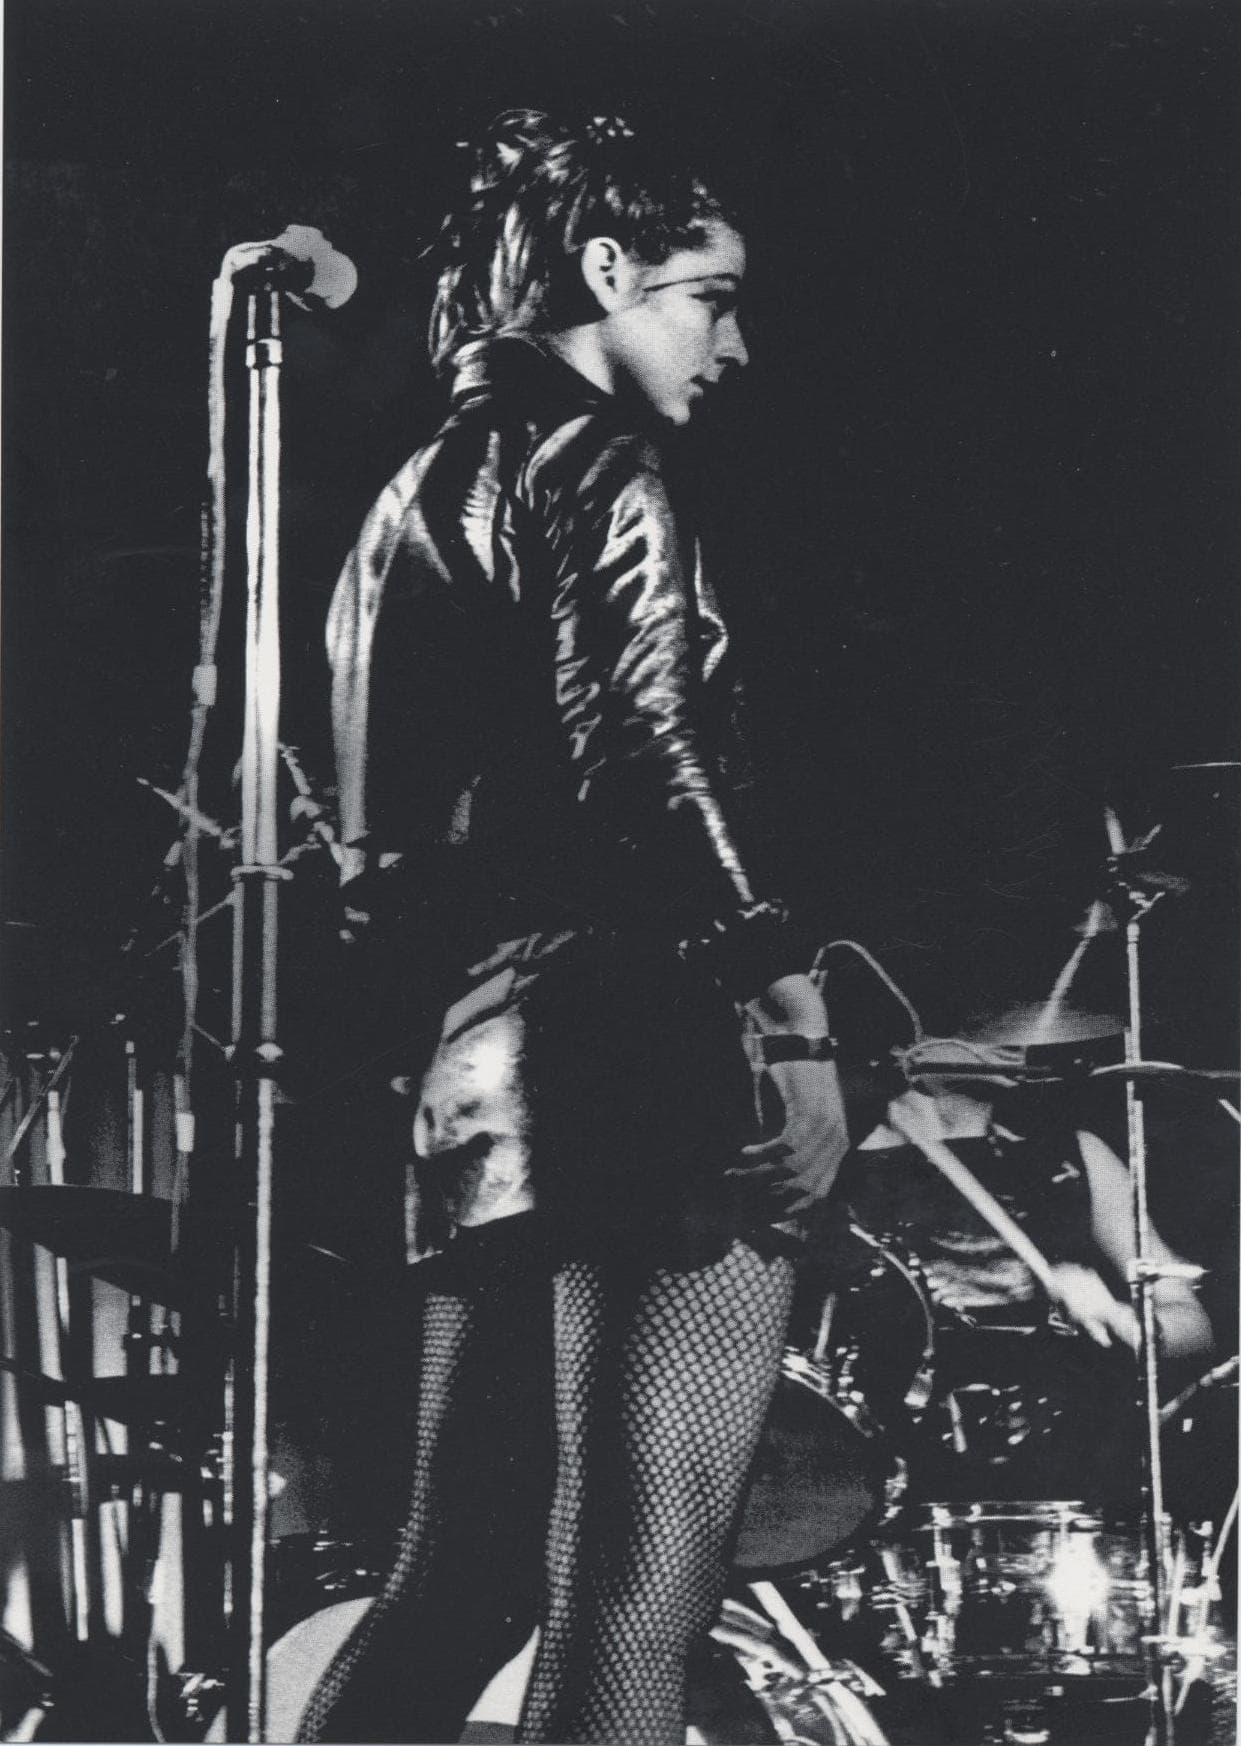 DL_Slits_Ari_Up_live_punk_1977